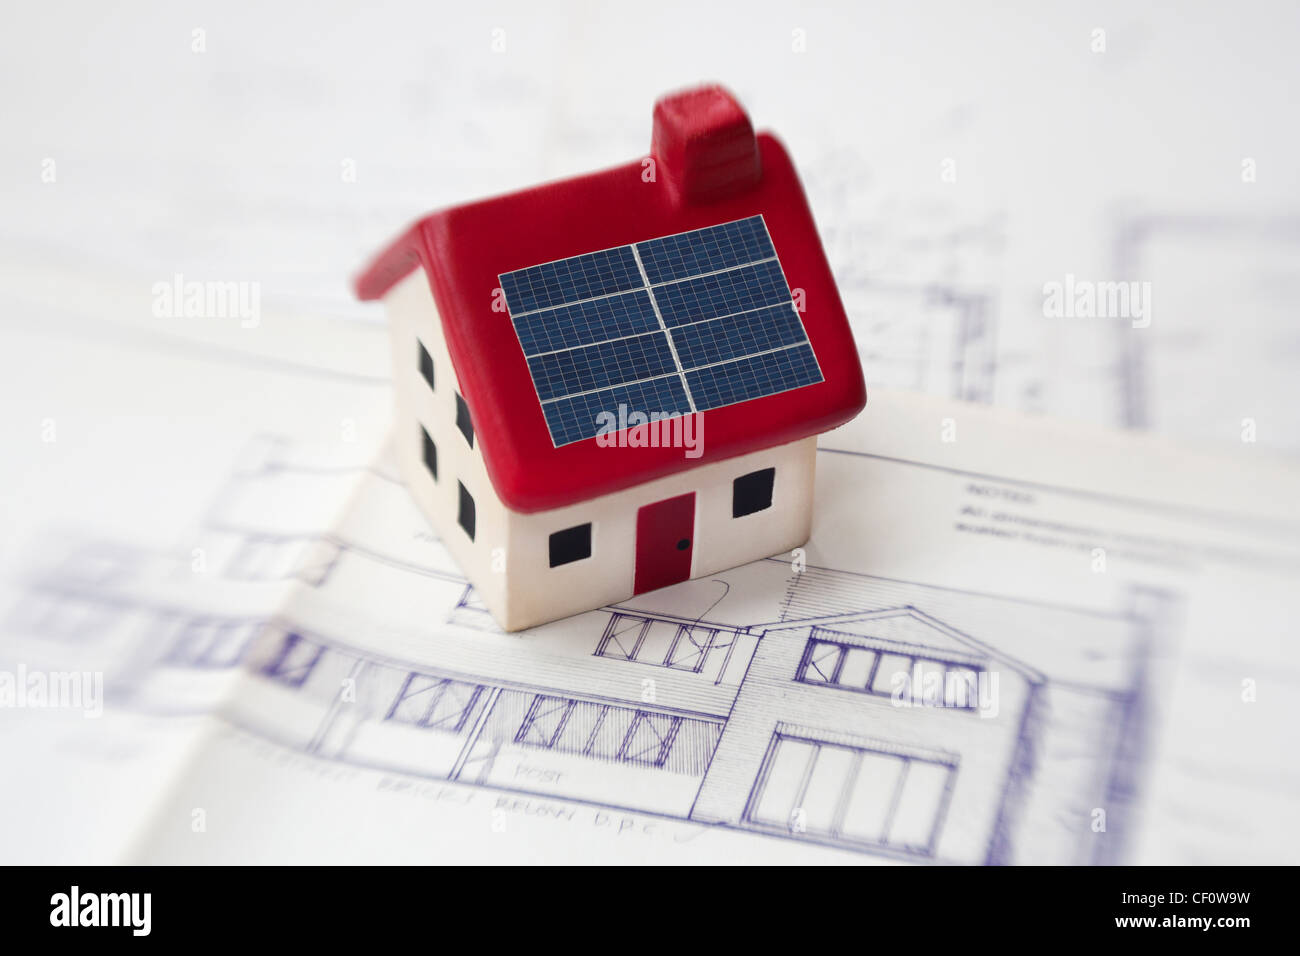 model house with solar panels on architects plans - Stock Image